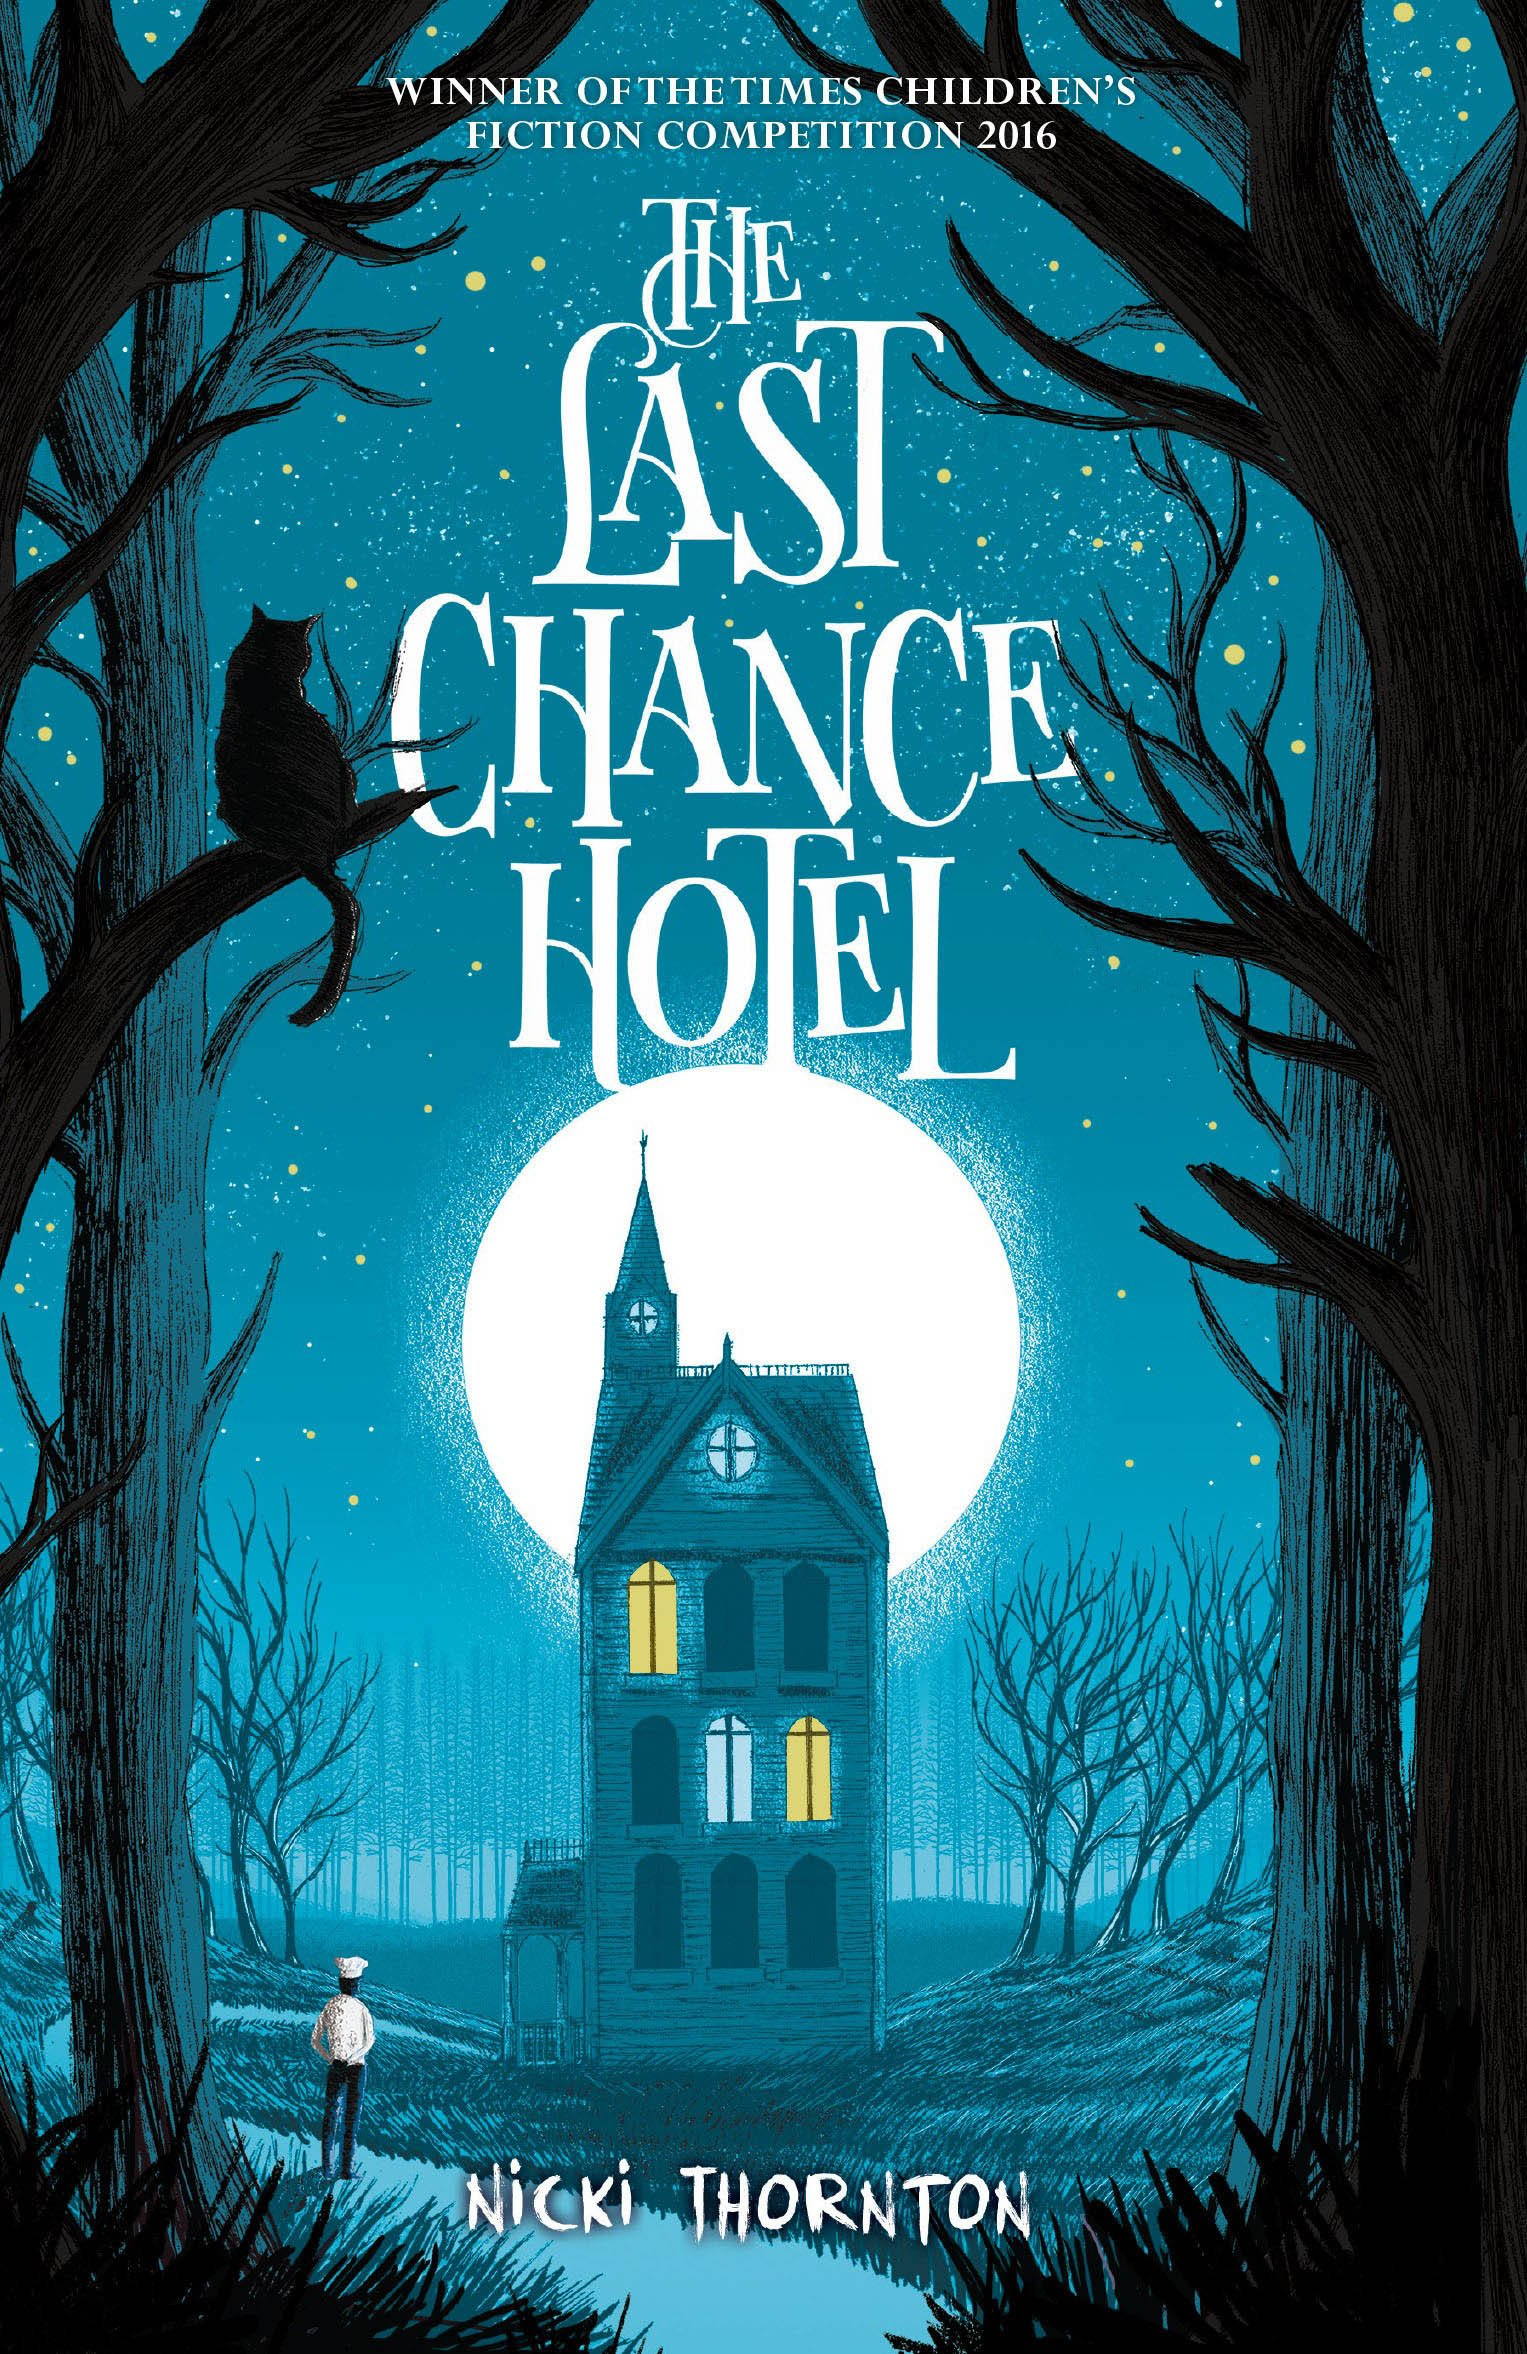 Summer Reading Challenge: The Last Chance Hotel